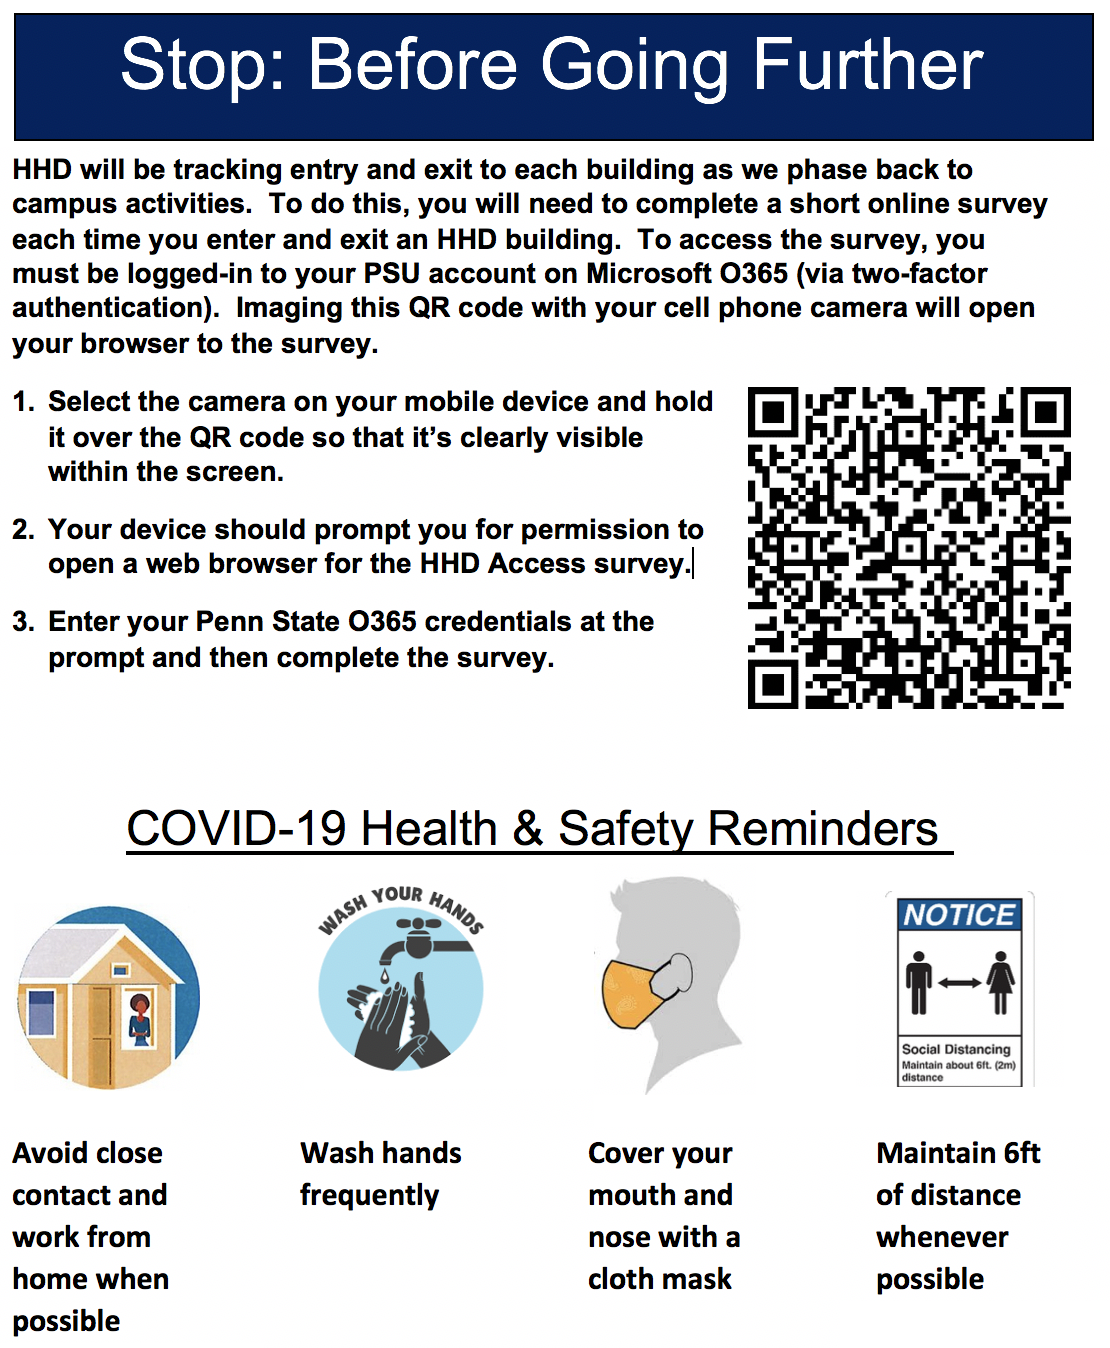 HHD Building Entry and Exit flyer